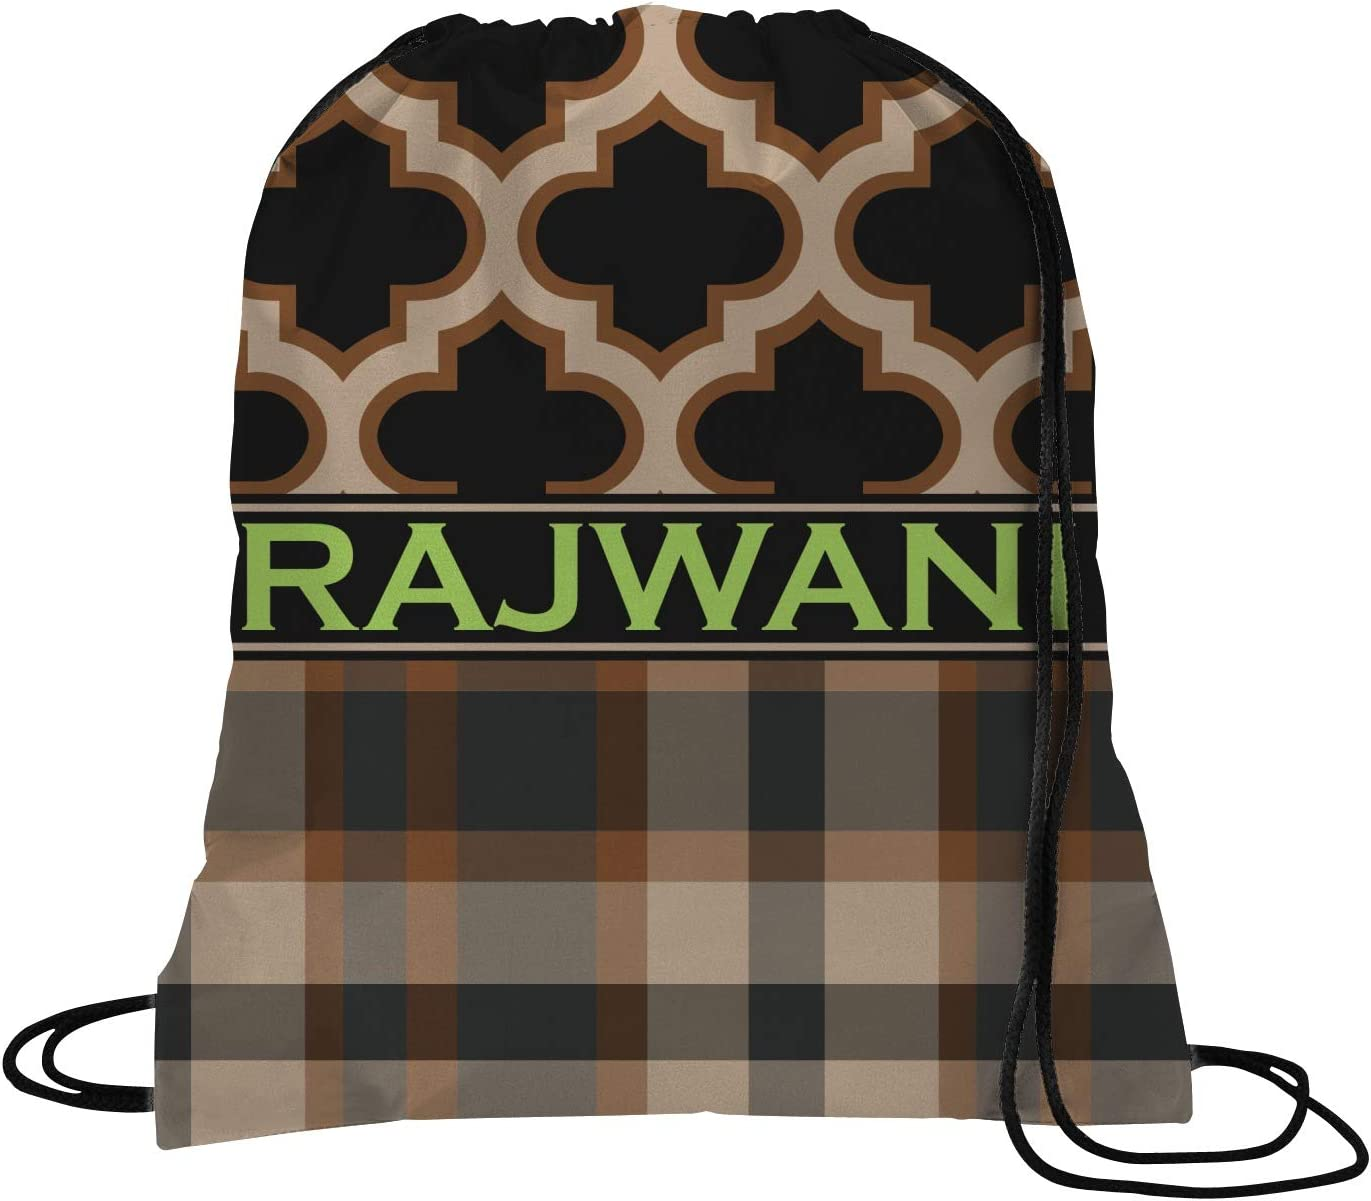 YouCustomizeIt Moroccan /& Plaid Duffel Bag Personalized